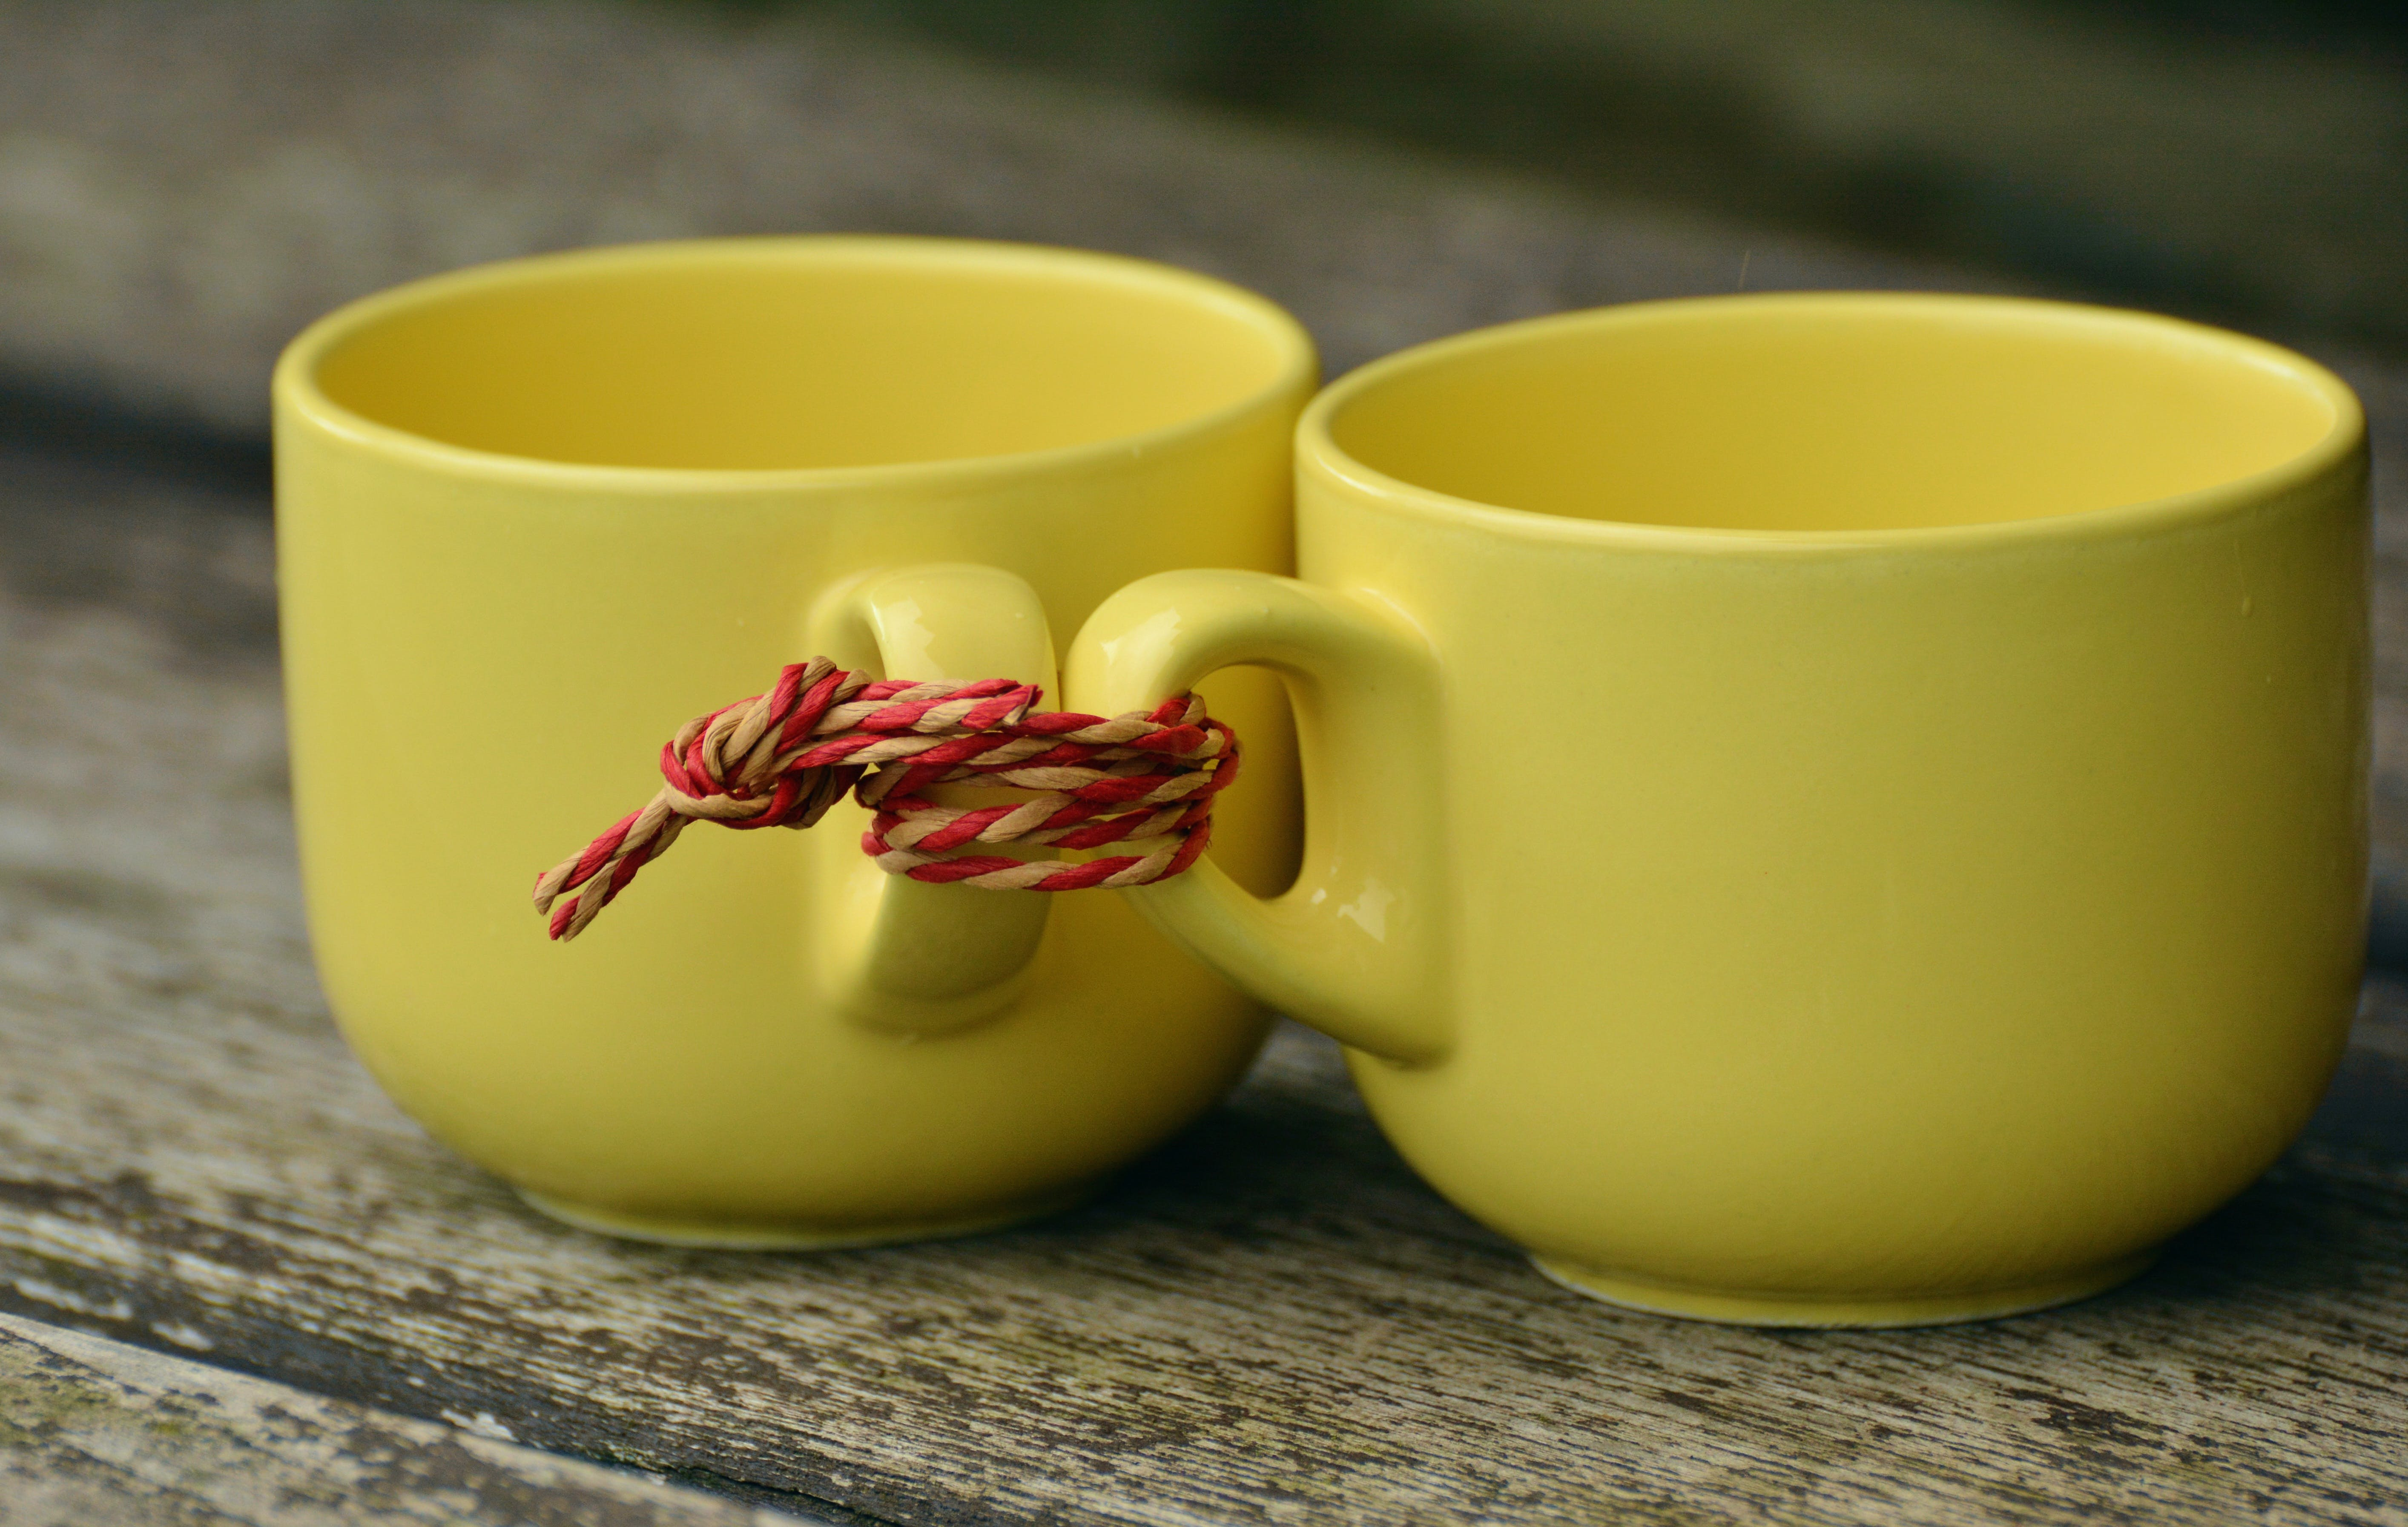 Two Yellow Mugs on Brown Wooden Surface